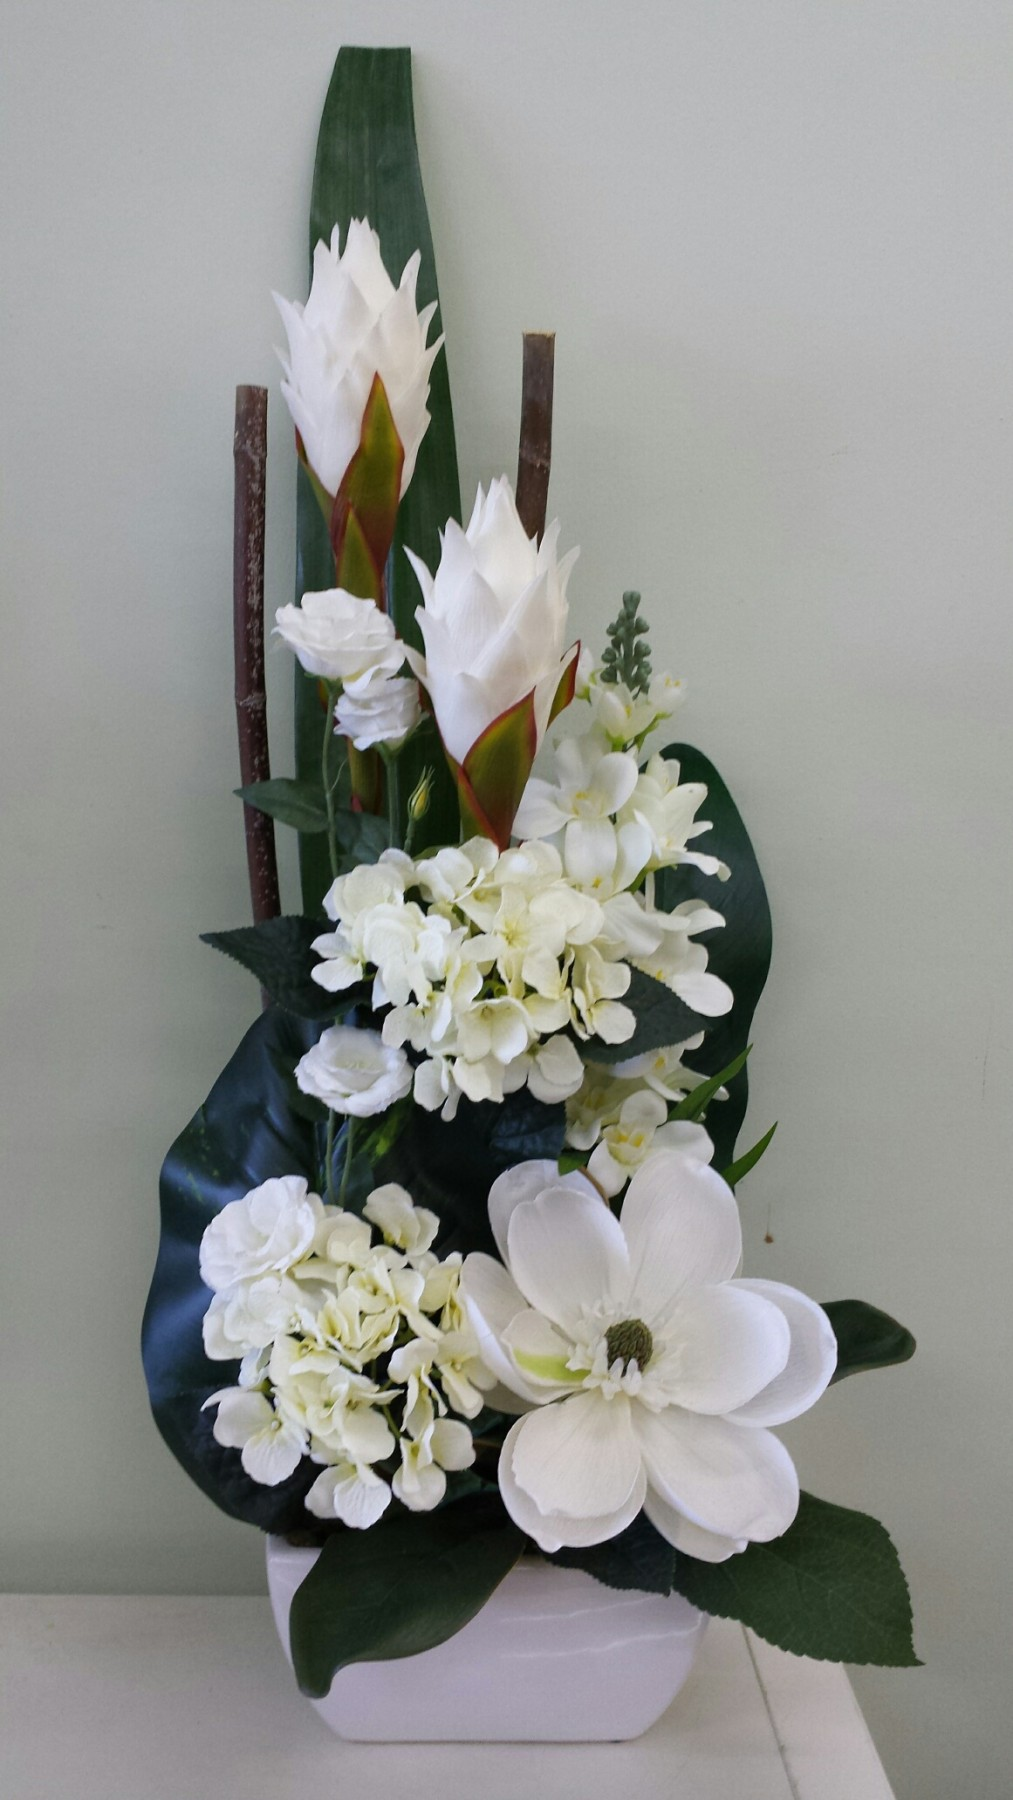 Artificial Flowers Online - Adelaide & Hills Delivery